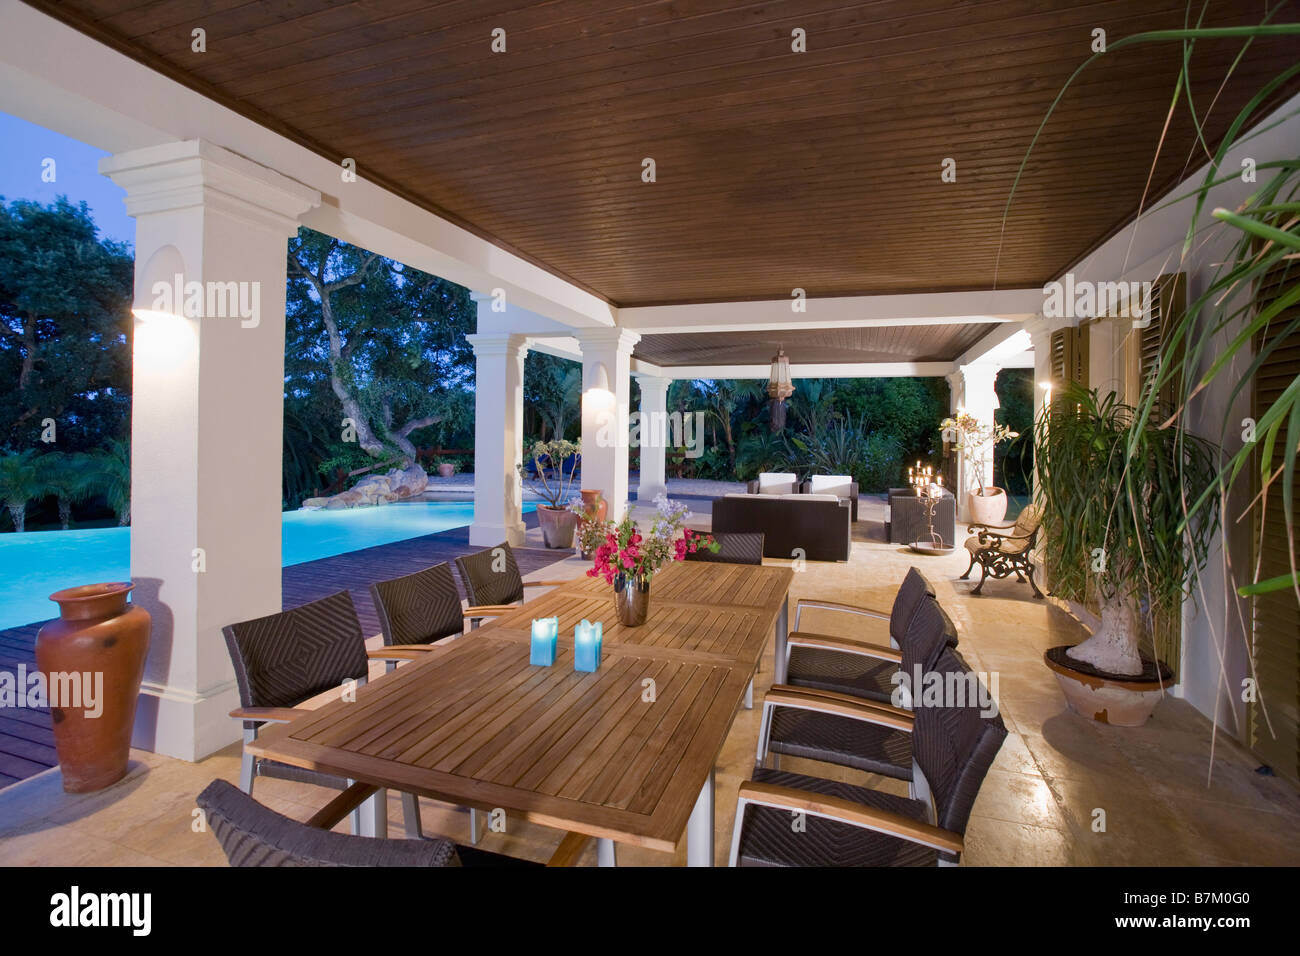 dining table and chairs on veranda beside swimming pool of modern